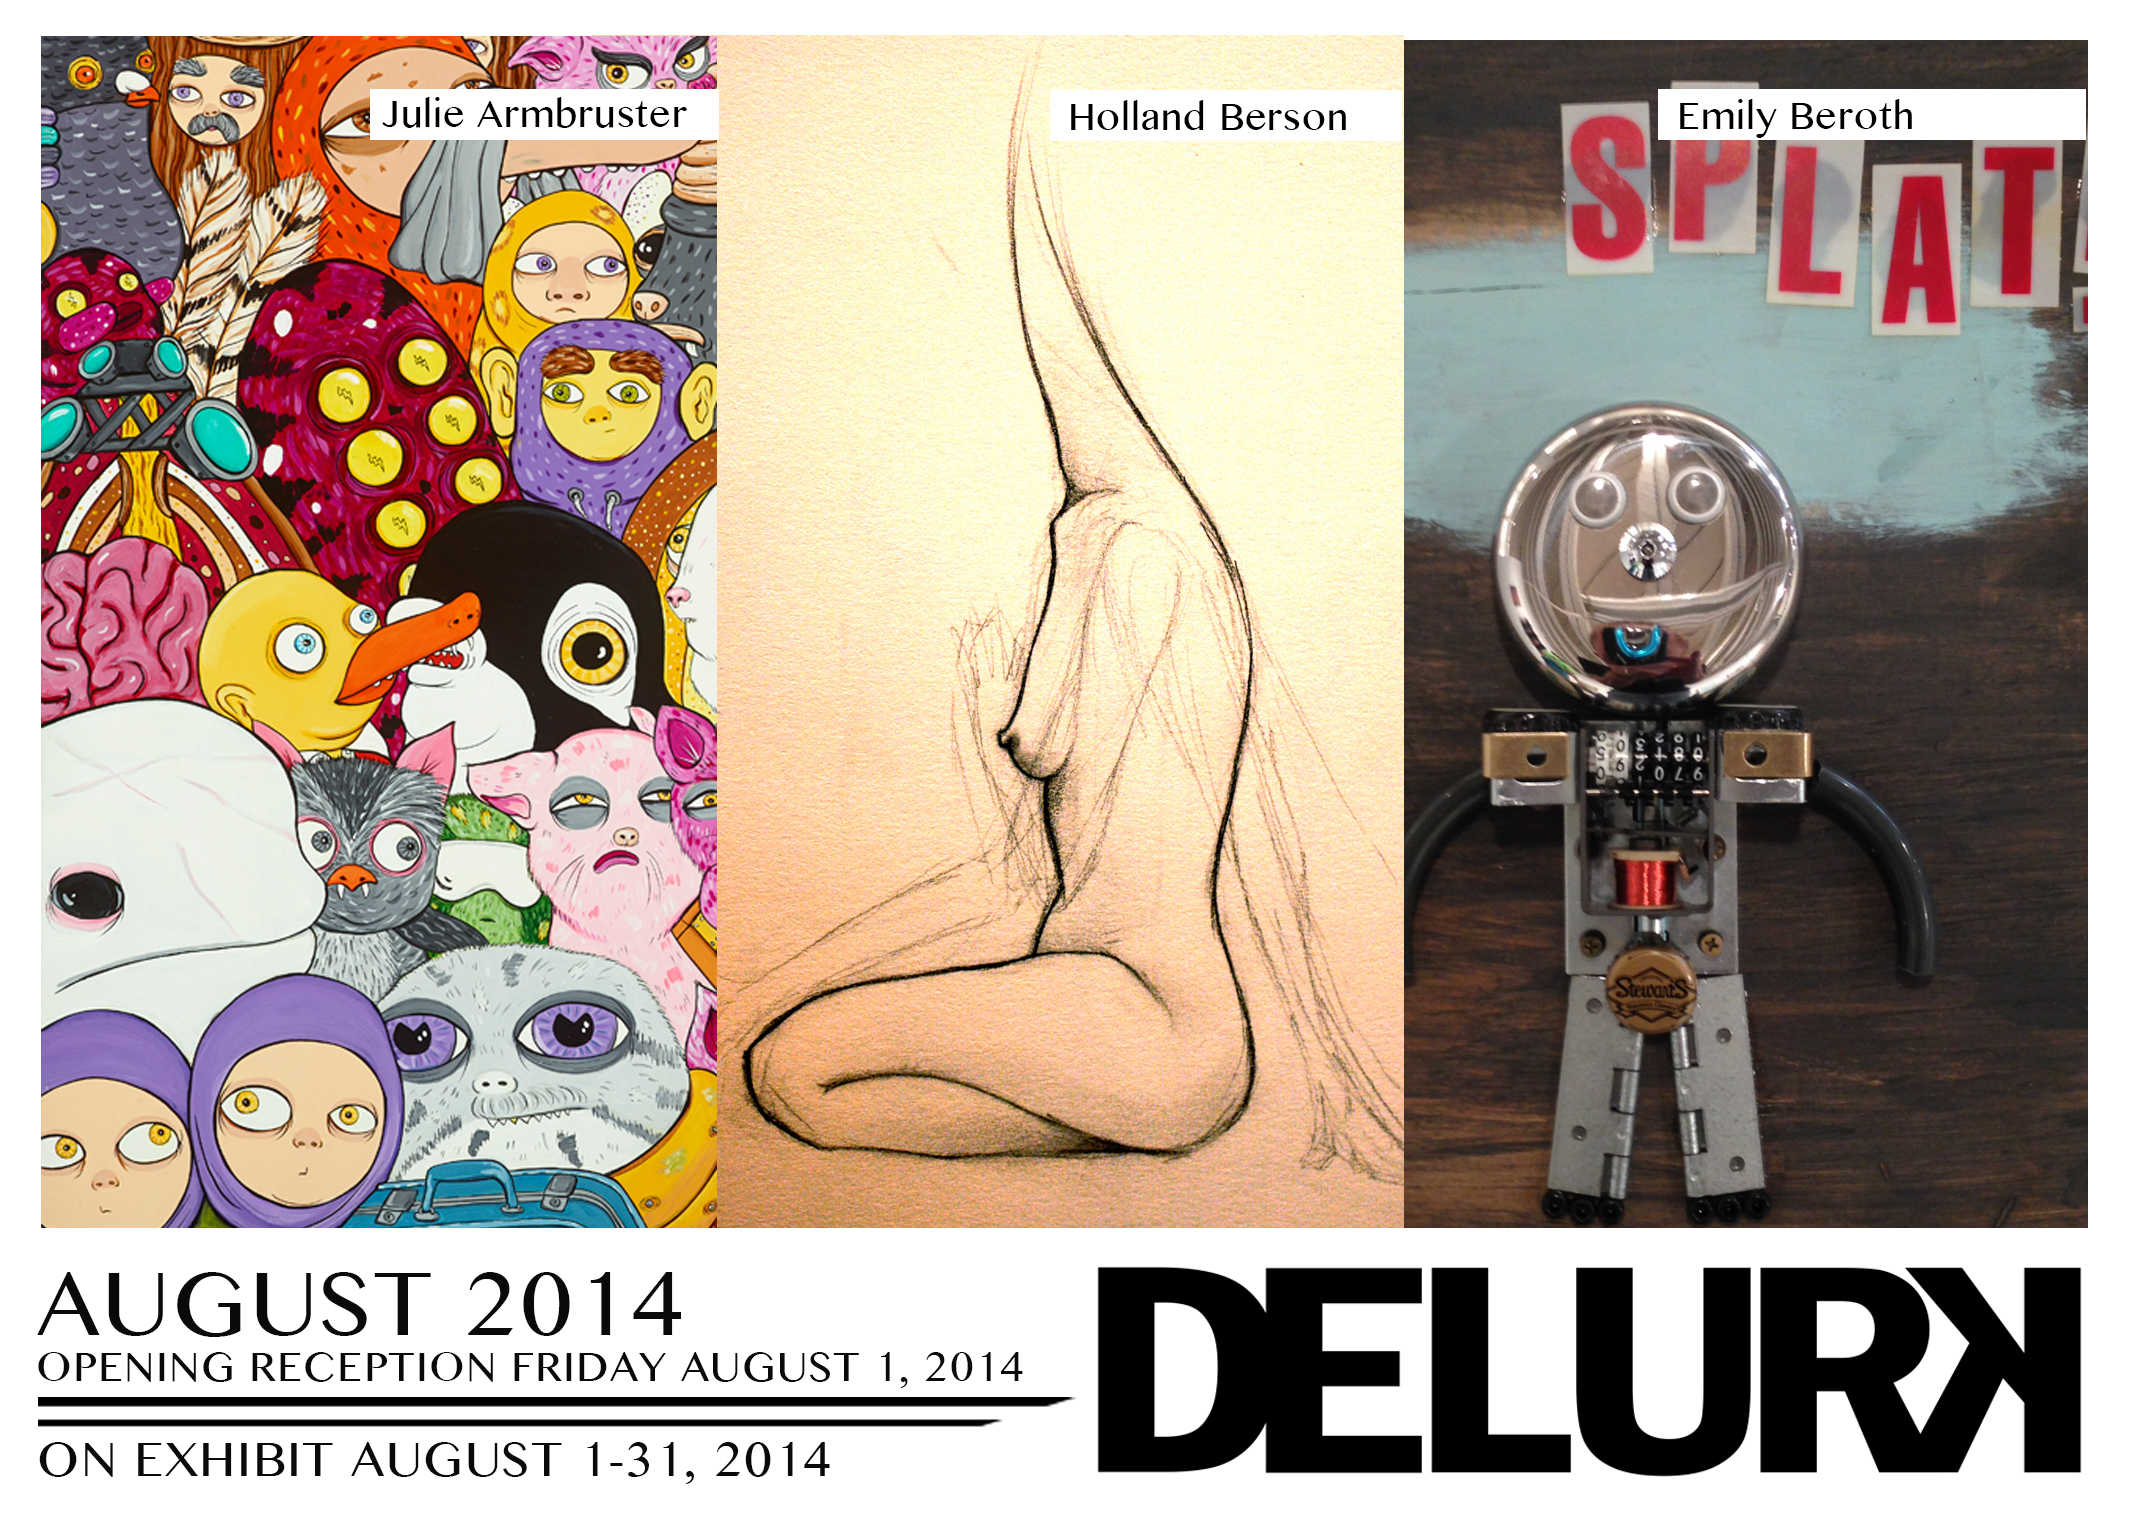 Delurk's August exhibition will feature artists Julie Armbruster, and two of Delurk's own, Holland Berson and 11-year old Junior Delurker, Emily Beroth.     Also on display will be select works from Delurk Collective artists.     Show runs August 1 - 31, 2014.   Opening Reception: August 1, 7-10PM